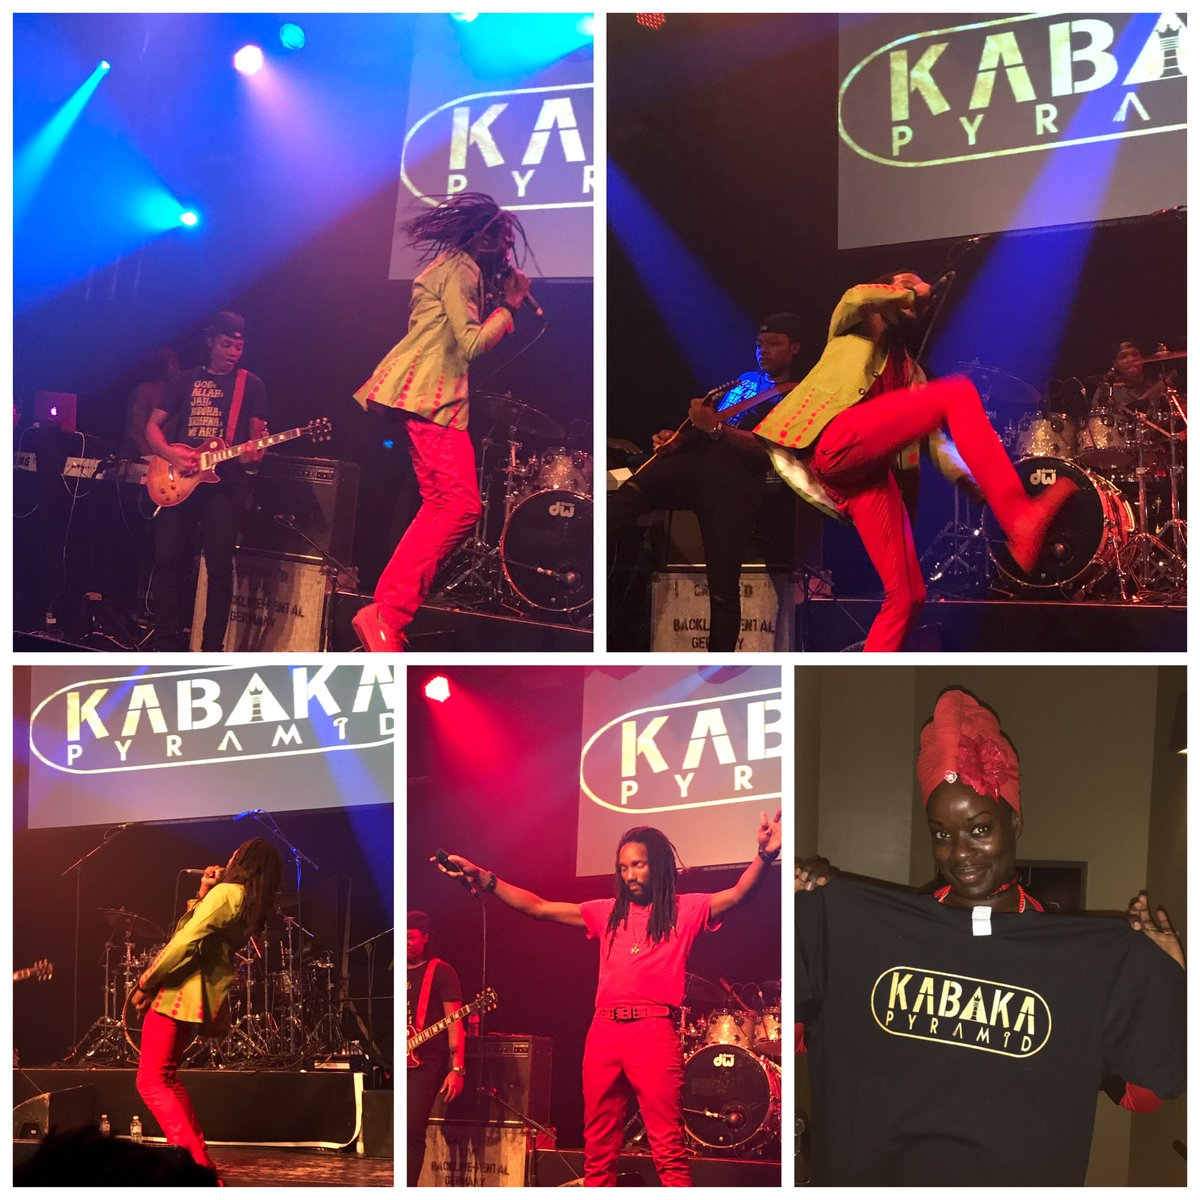 Hey my Belveds, The @bebblerock #contraband tour hit London last night.. King @Kabakapyramid tore up the stage. Look  out #Manchester!  <br>http://pic.twitter.com/If6hNqnv1n &ndash; bij Stoke Newington International Airport